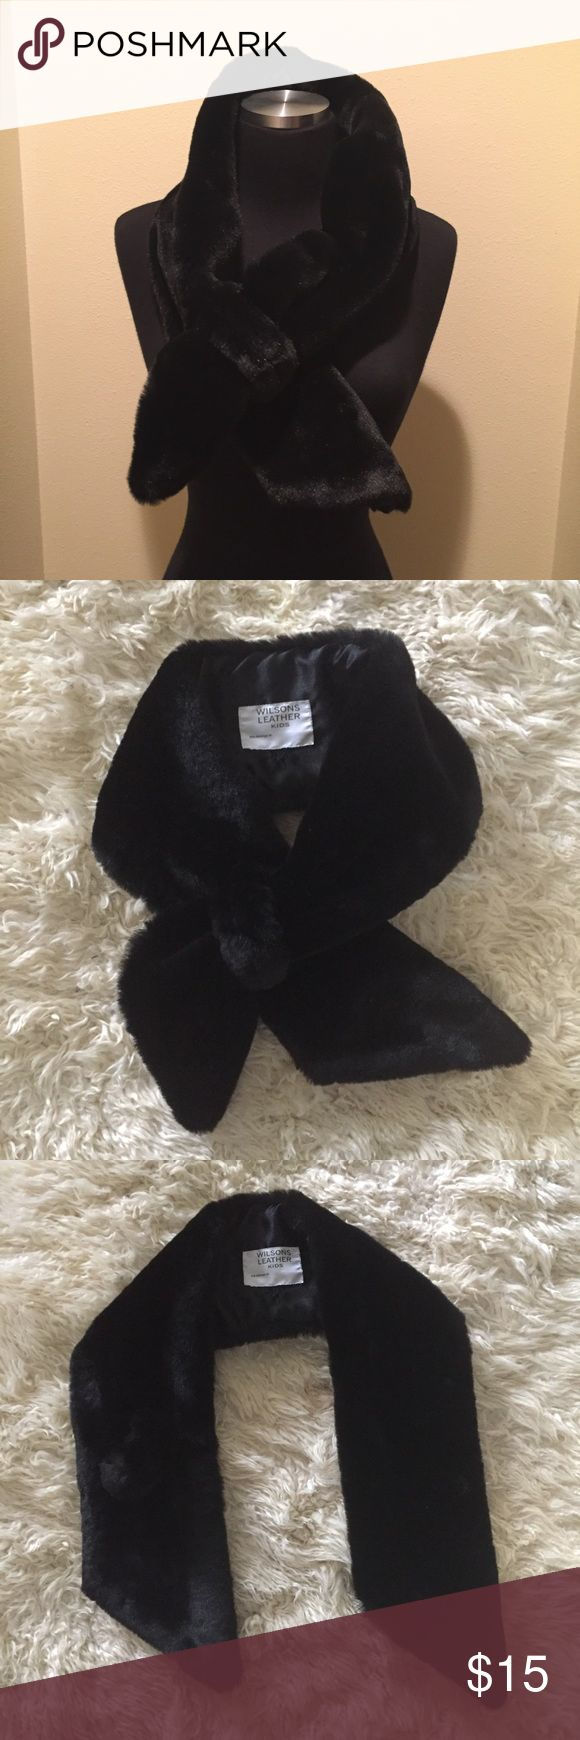 WILSONS LEATHER KIDS FUR SCARF WRAP Shawl shrug cape fur scarf wrap from WILSONS LEATHER KIDS.  Size 44/6.  Can be attach to collars. Pre owned, good condition Wilsons Leather Other